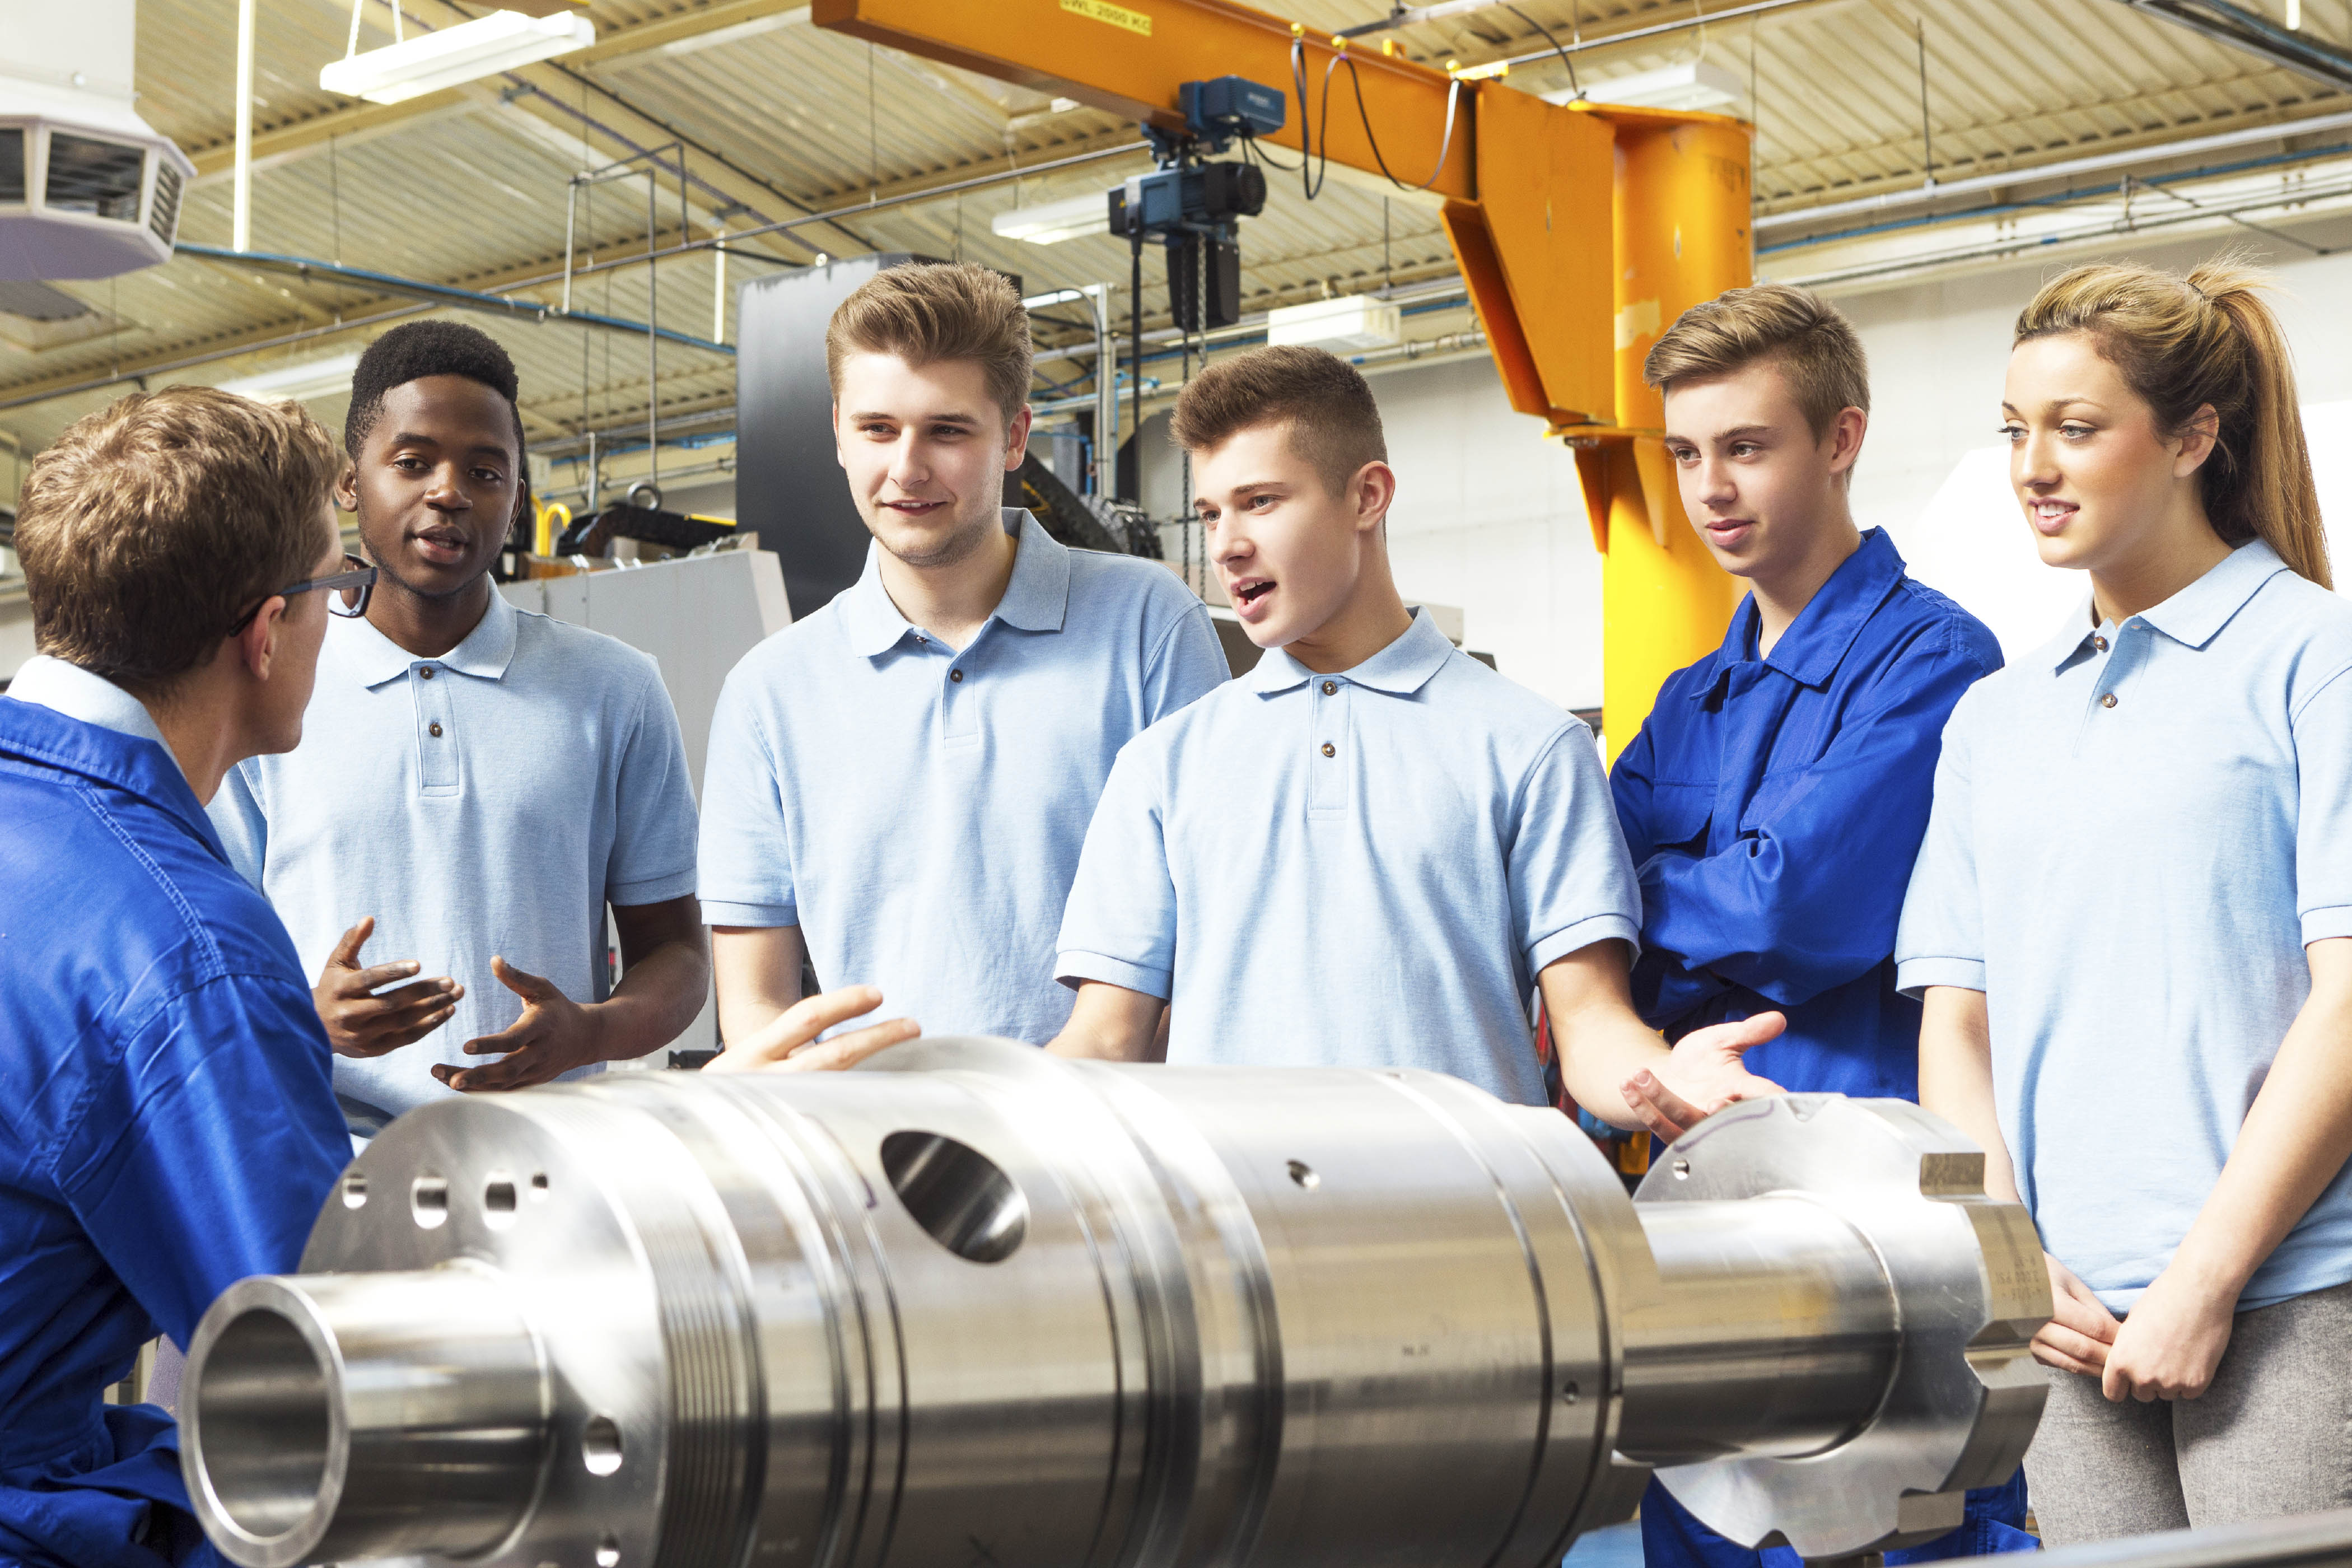 Students tour a manufacturing facility